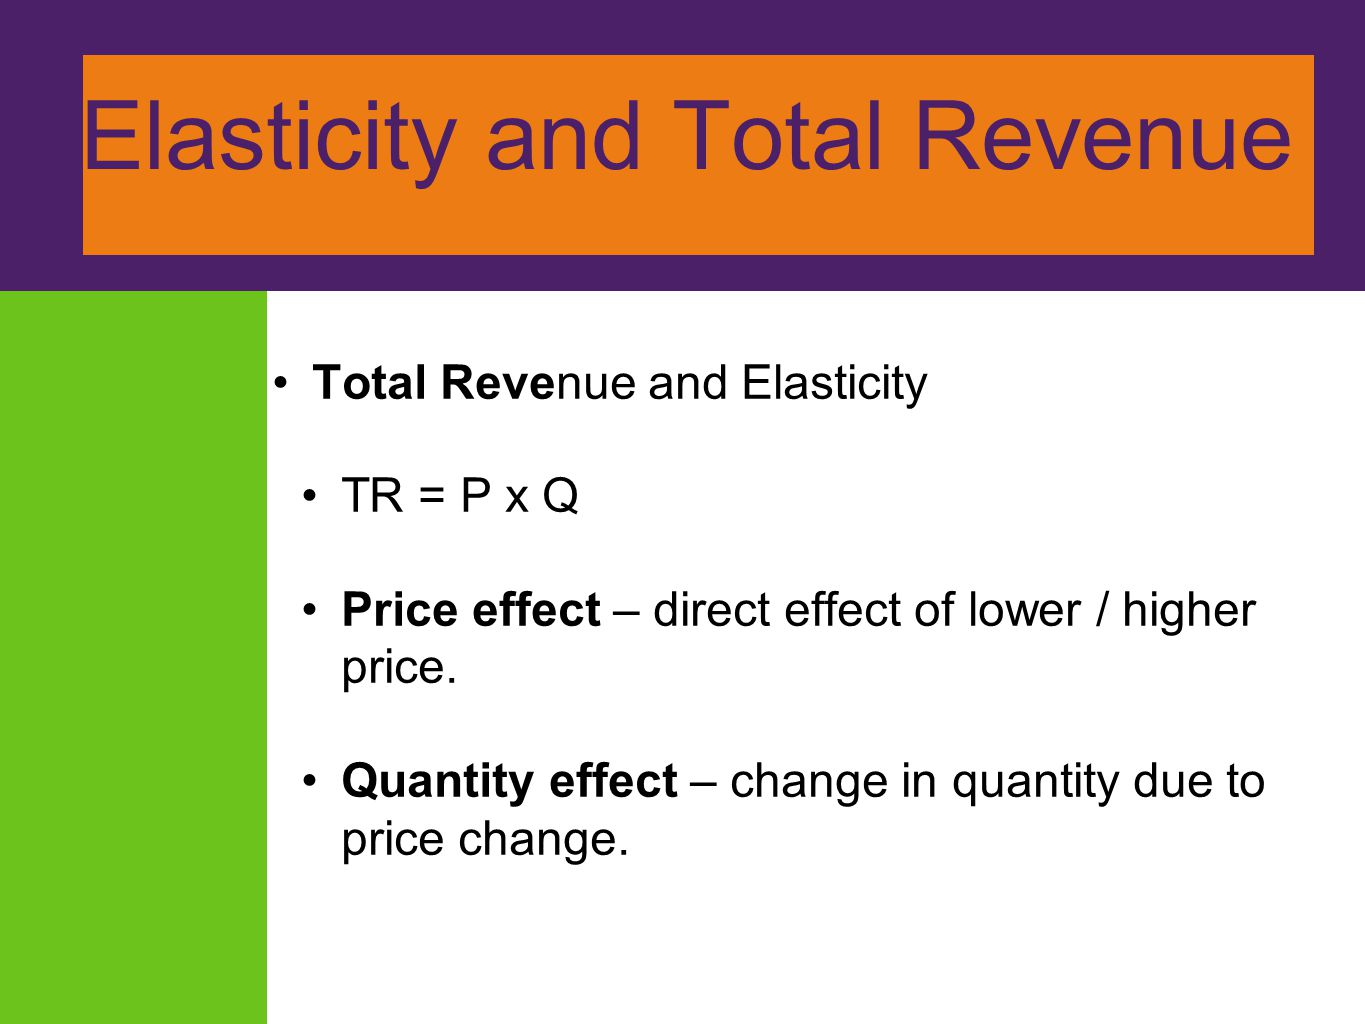 Elasticity and Total Revenue